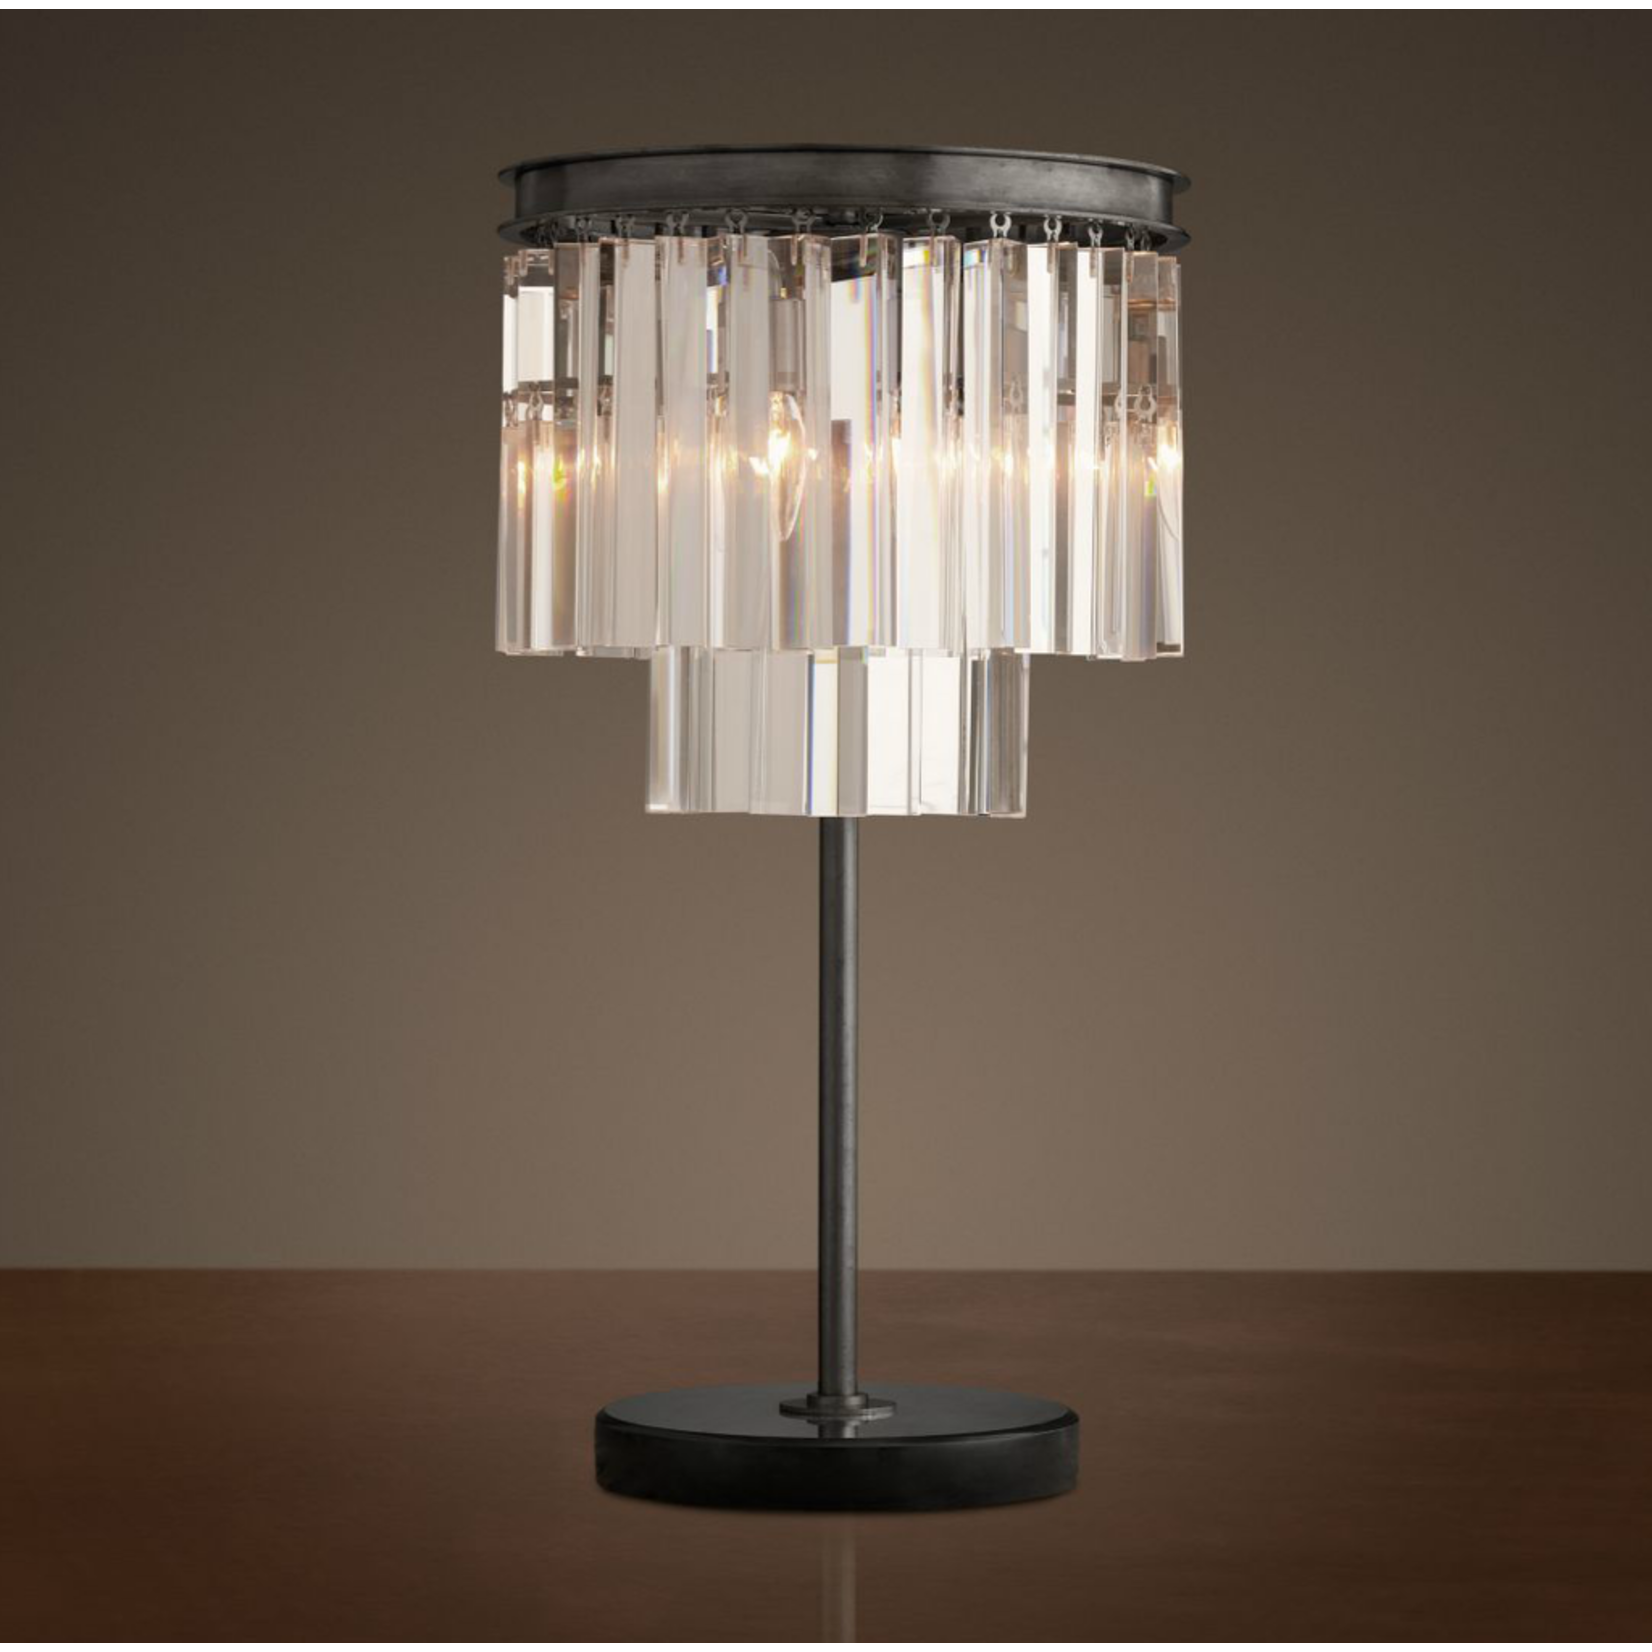 TIMOTHY OULTON ODEON TABLE LAMP